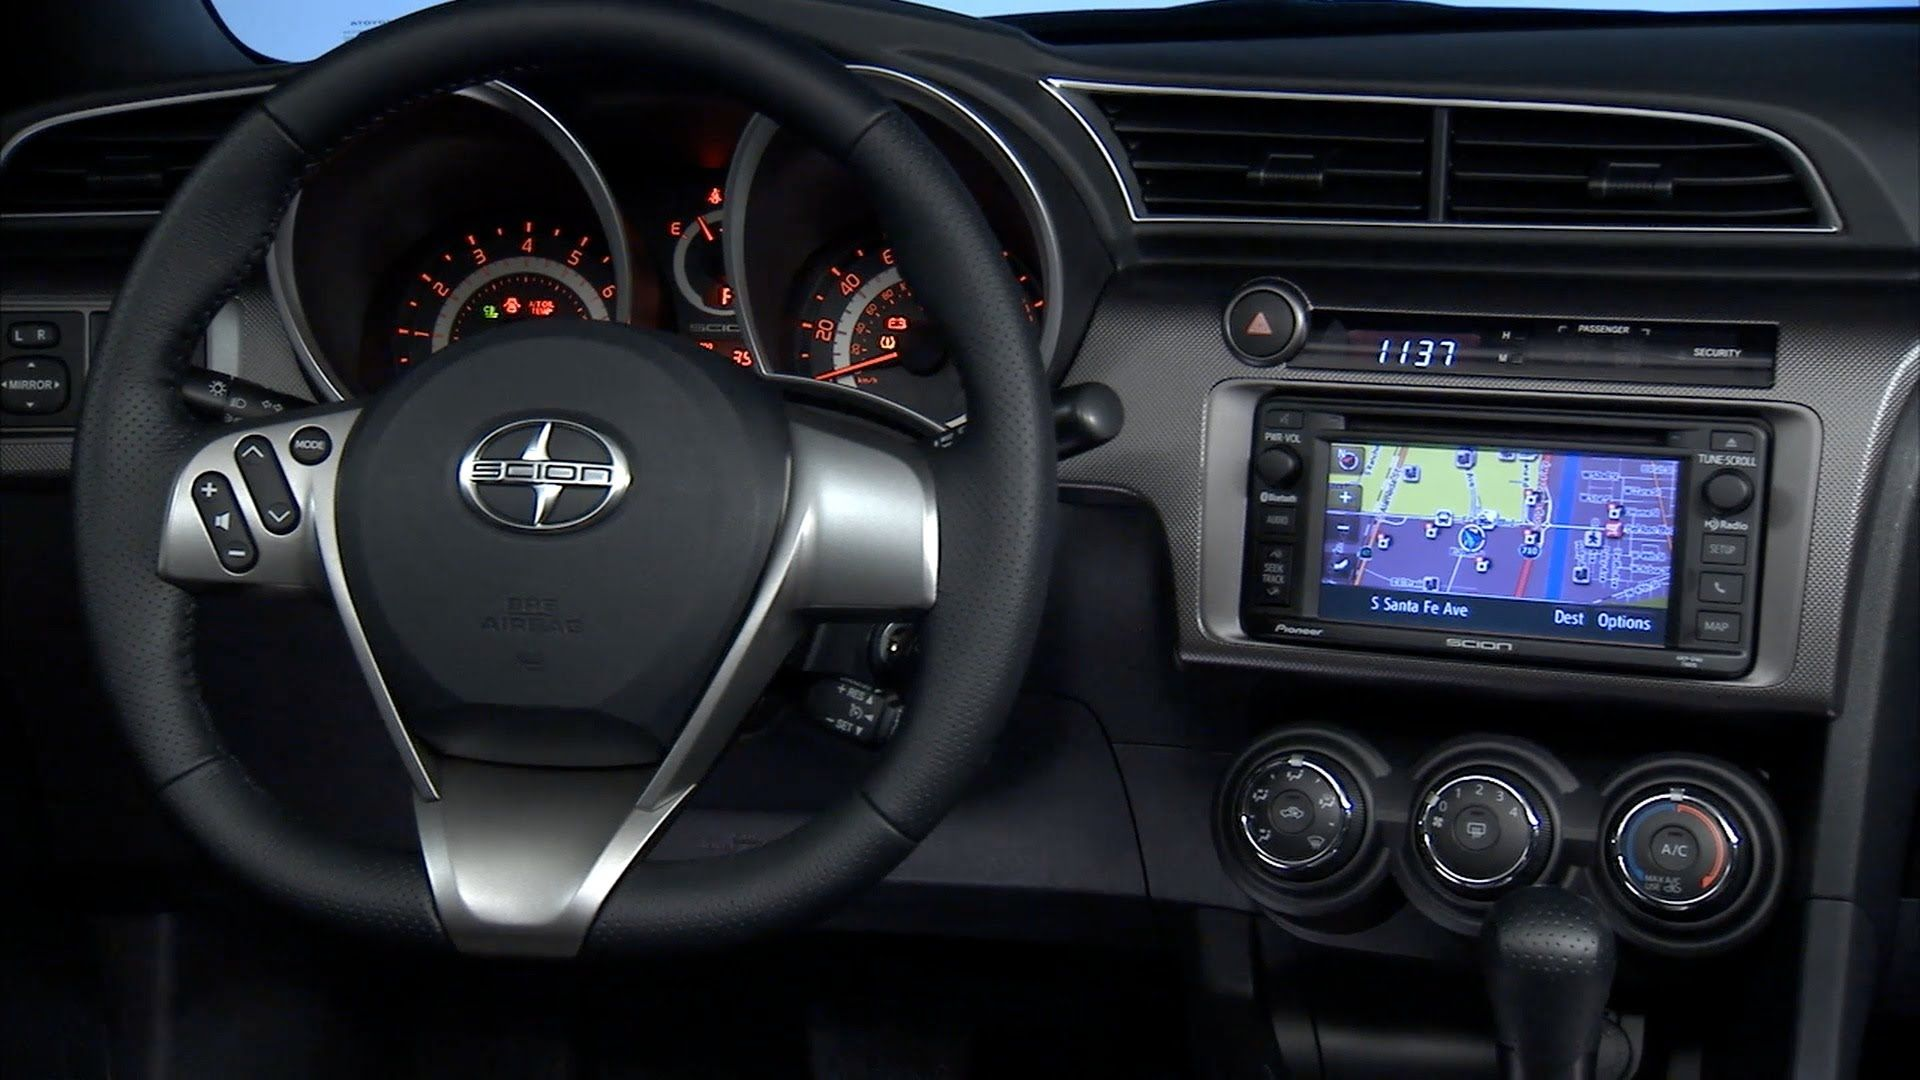 2014 scion tc interior 2014 scion tc interior youtube dream cars pinterest 2014 for Scion frs interior accessories